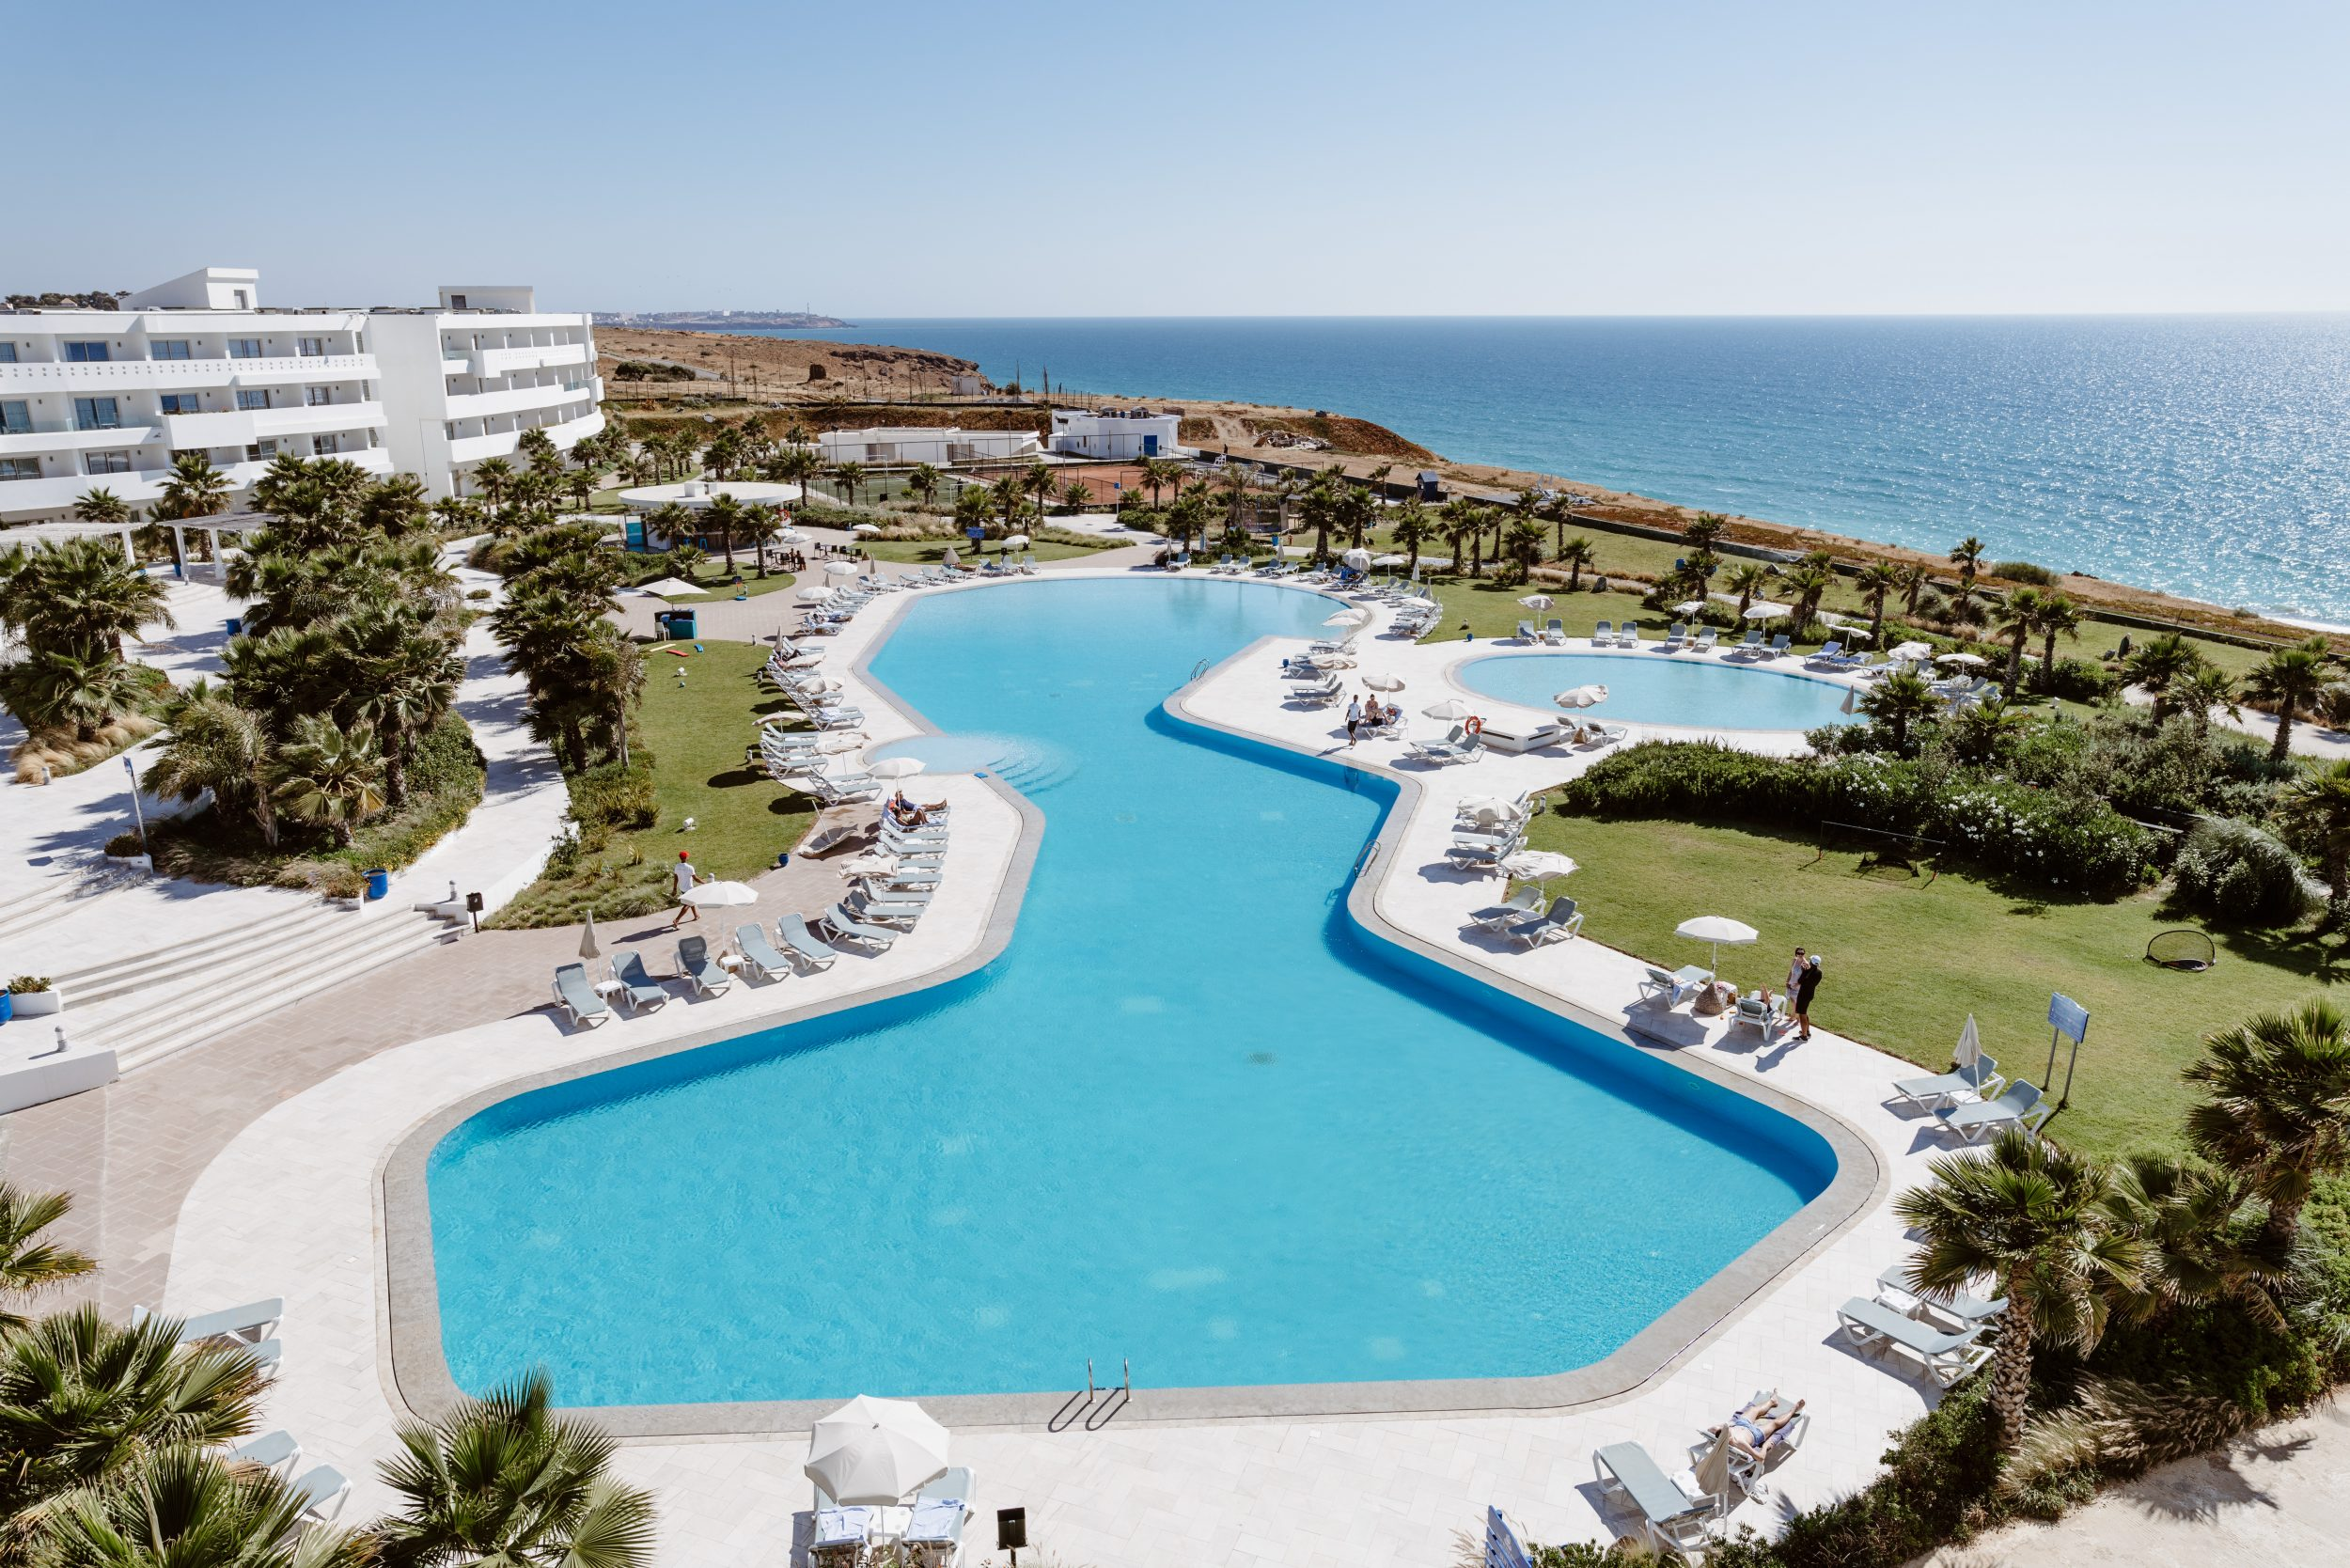 Lixus Beach Resort Larache